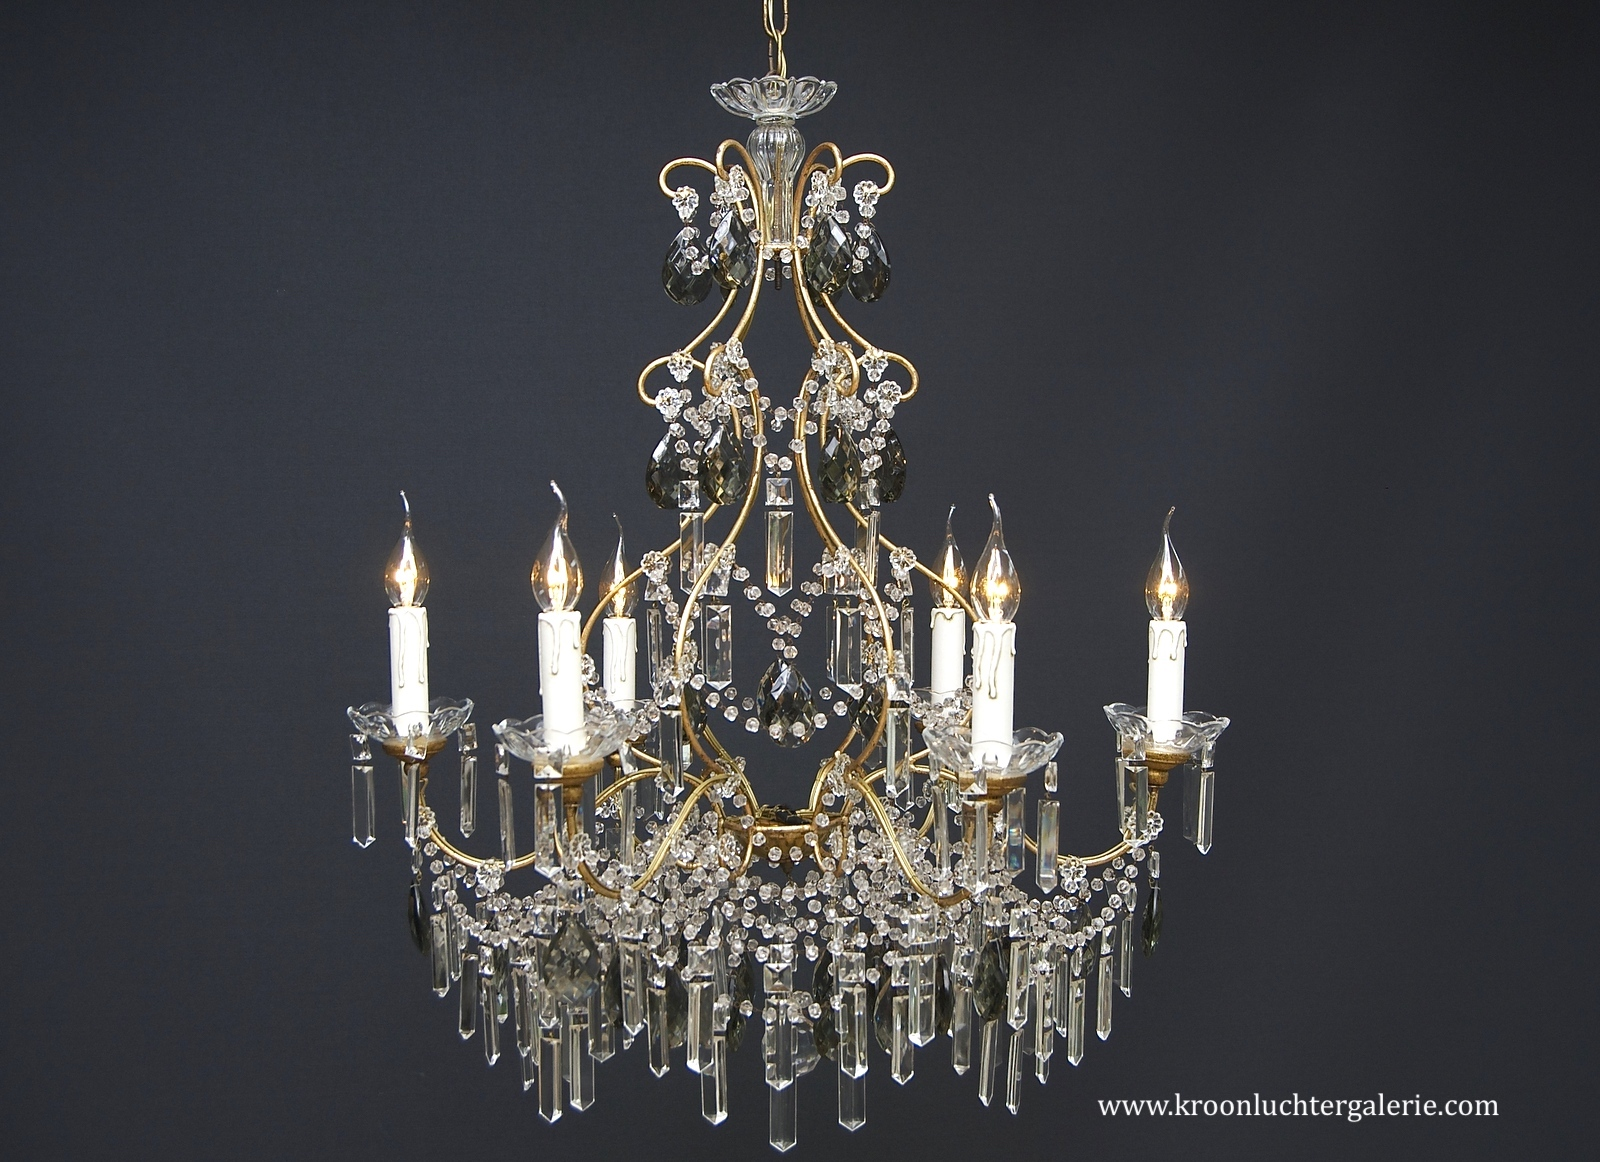 A 20th century Italian chandelier with 6 light